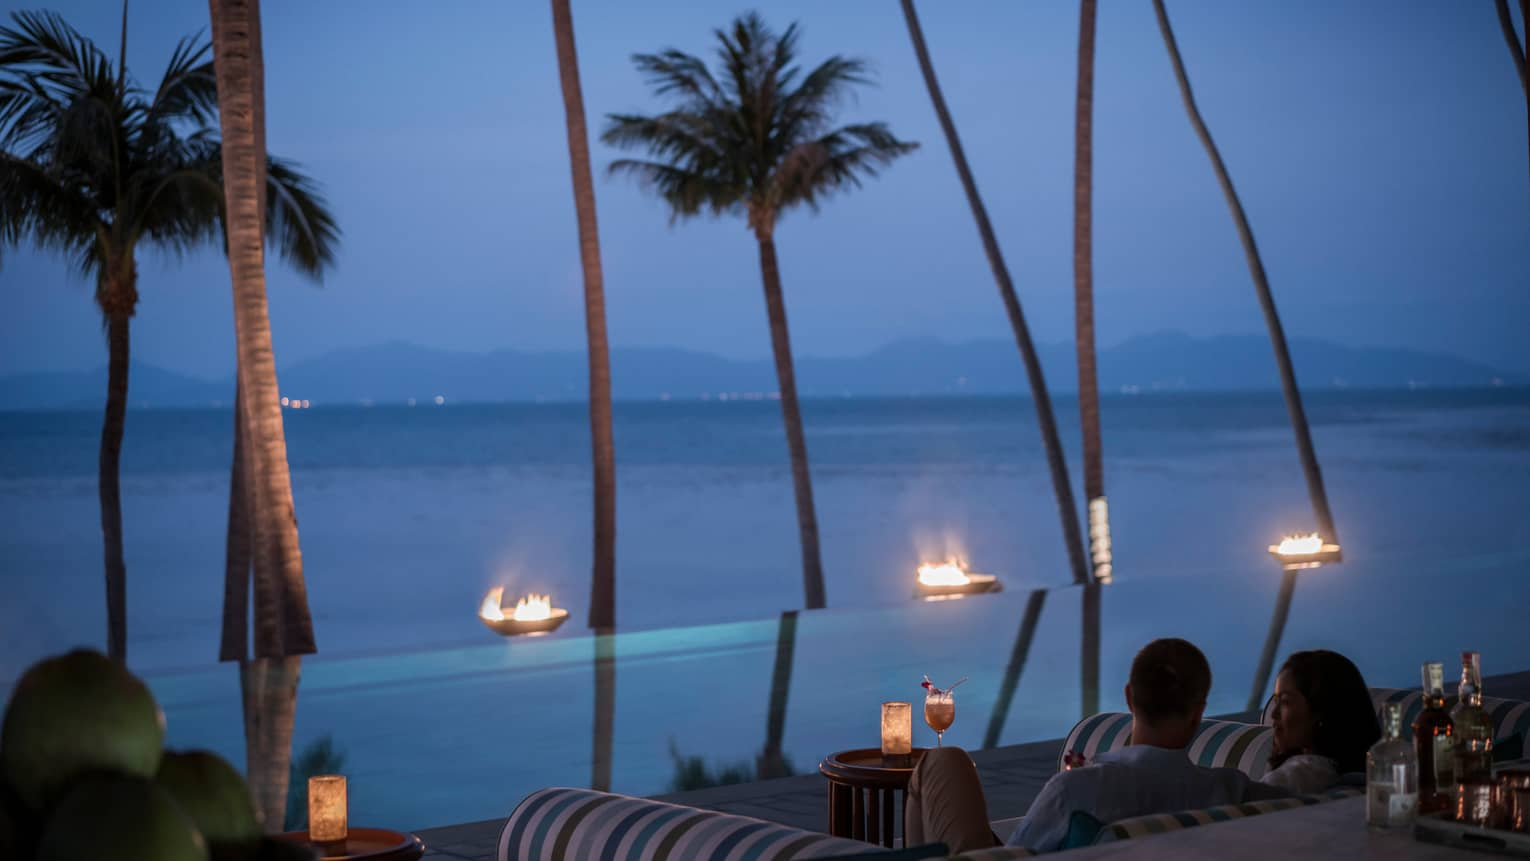 CoCoRum patrons look out at tall palm trees, outdoor fireplace line infinity pool in front of ocean at night